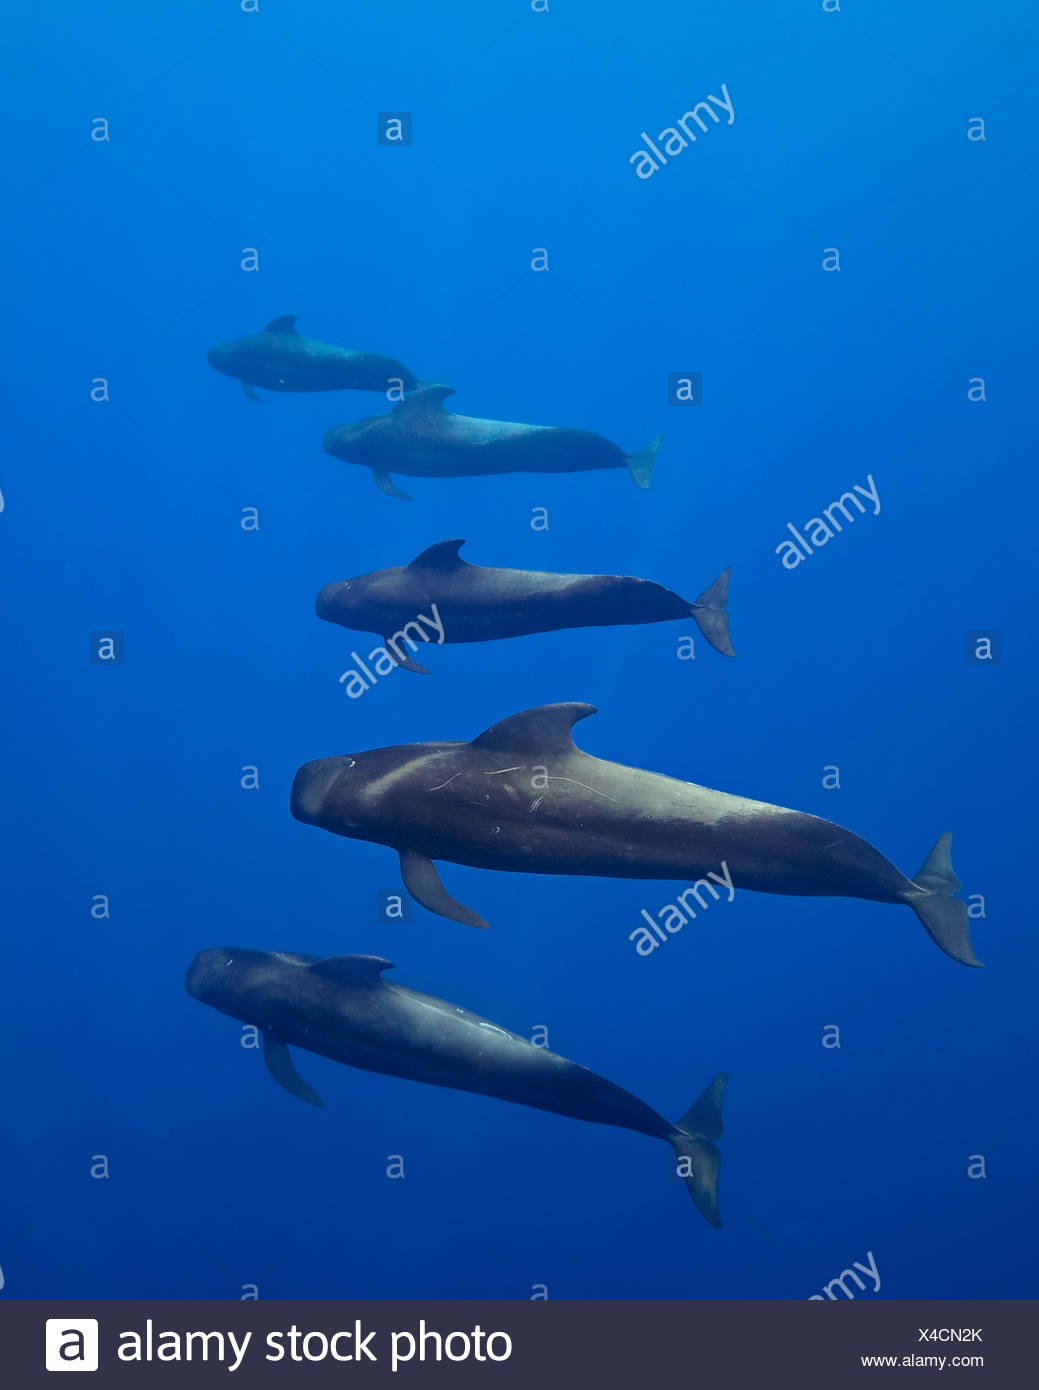 Short-finned pilot whales, open ocean - Stock Image